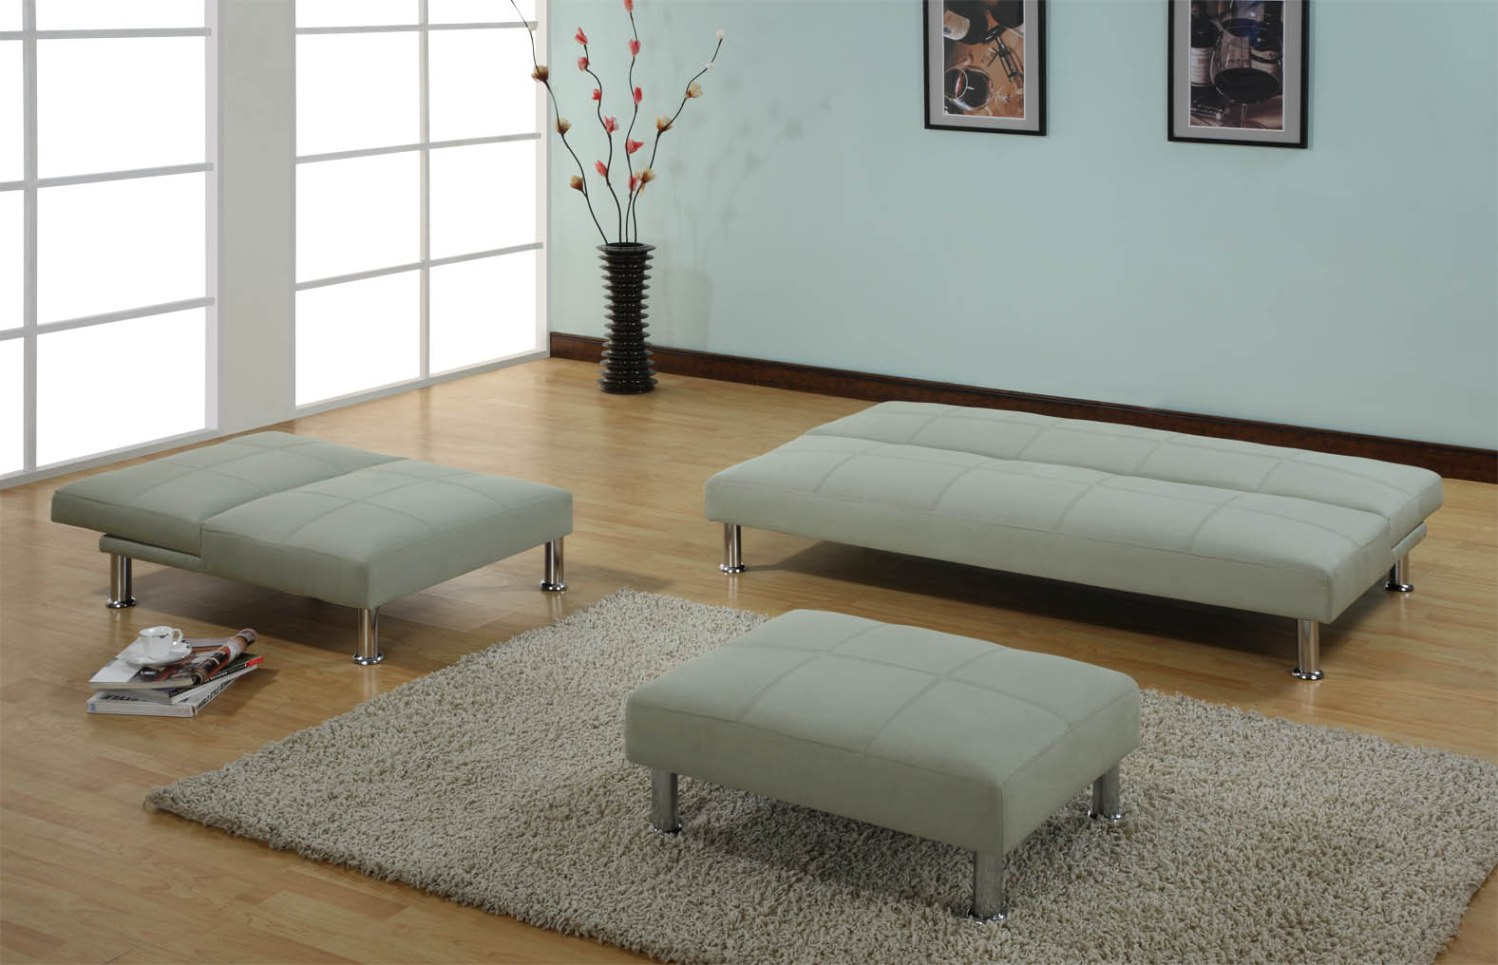 Twin Sofa Bed Elegant Choice For Small Spaces 4 Twin Sofa Bed Elegant Choice For Small Spaces 4